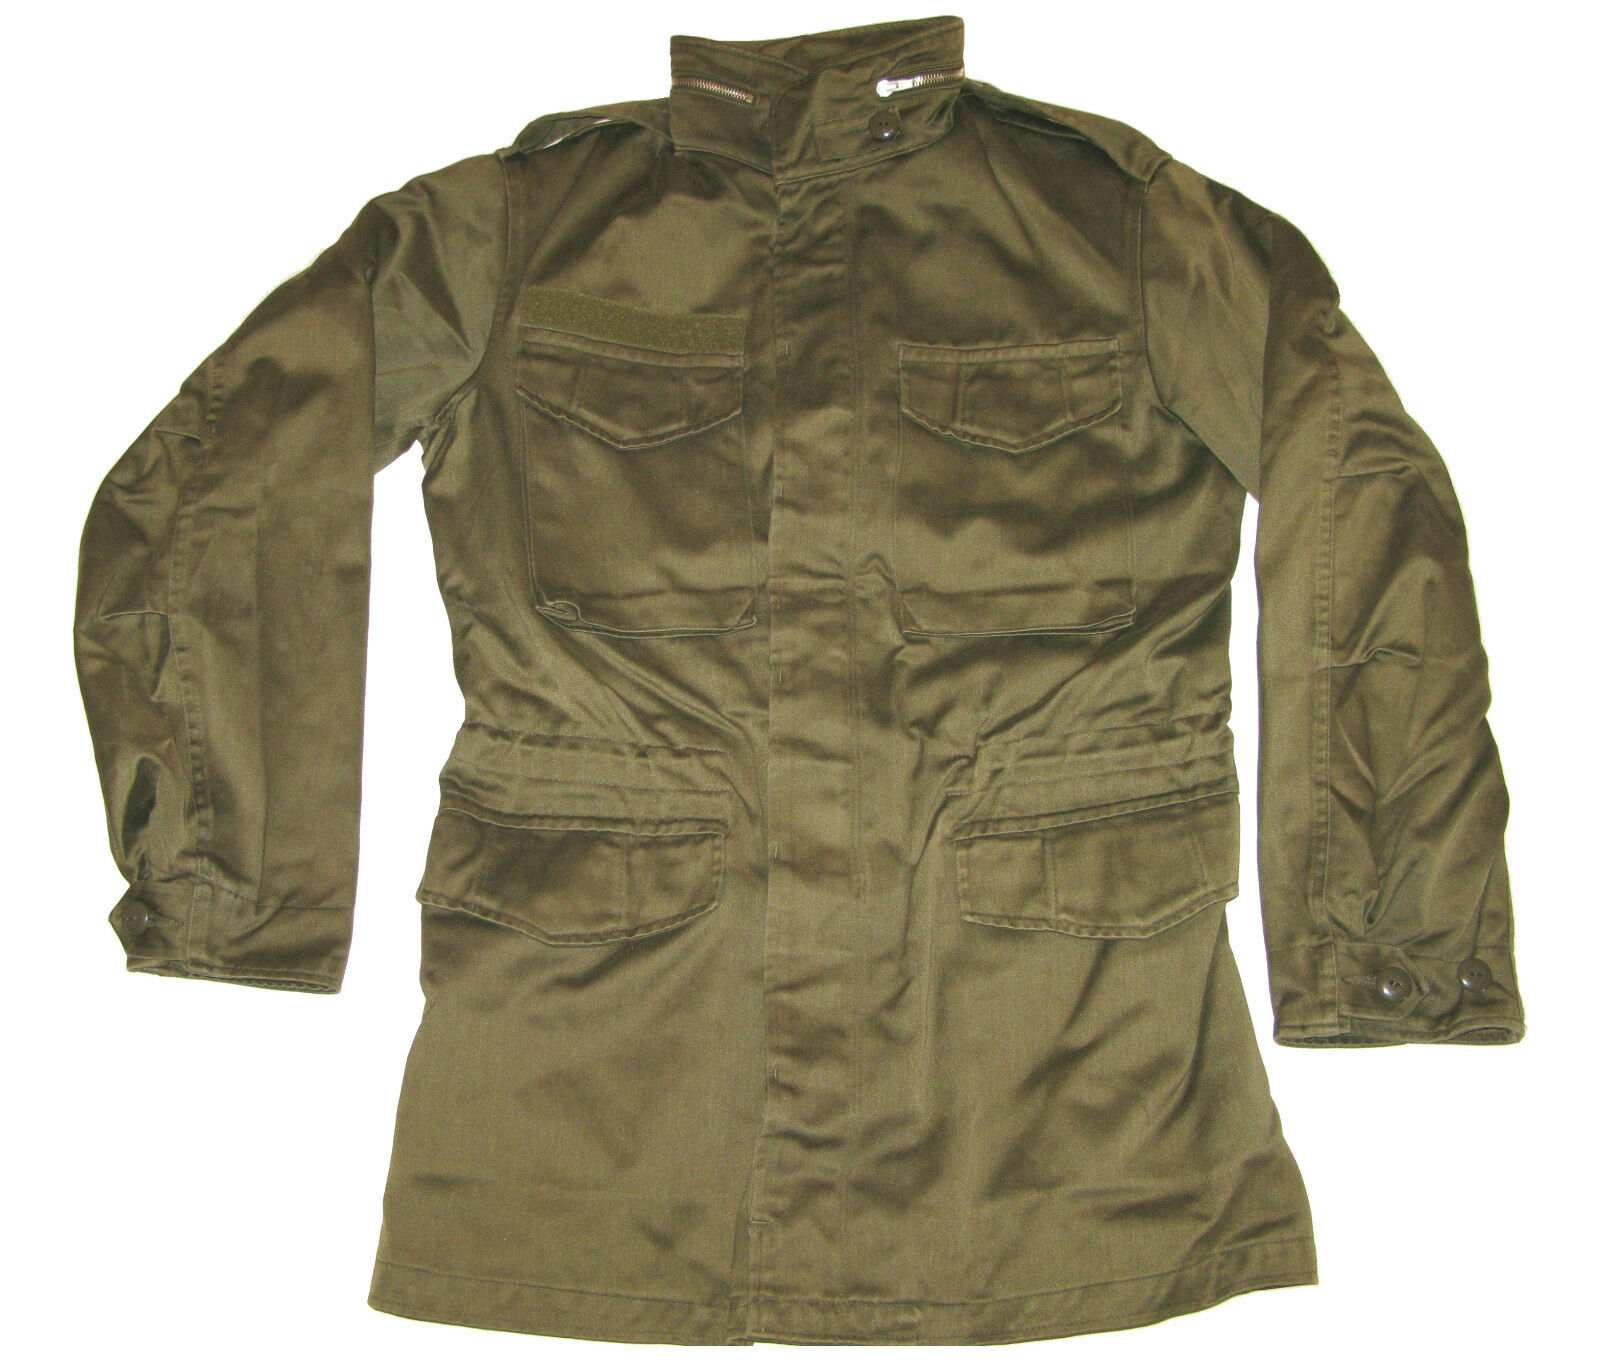 Mens Military Type Olive Drab Stone Washed Airborne Field Vintage Jacket